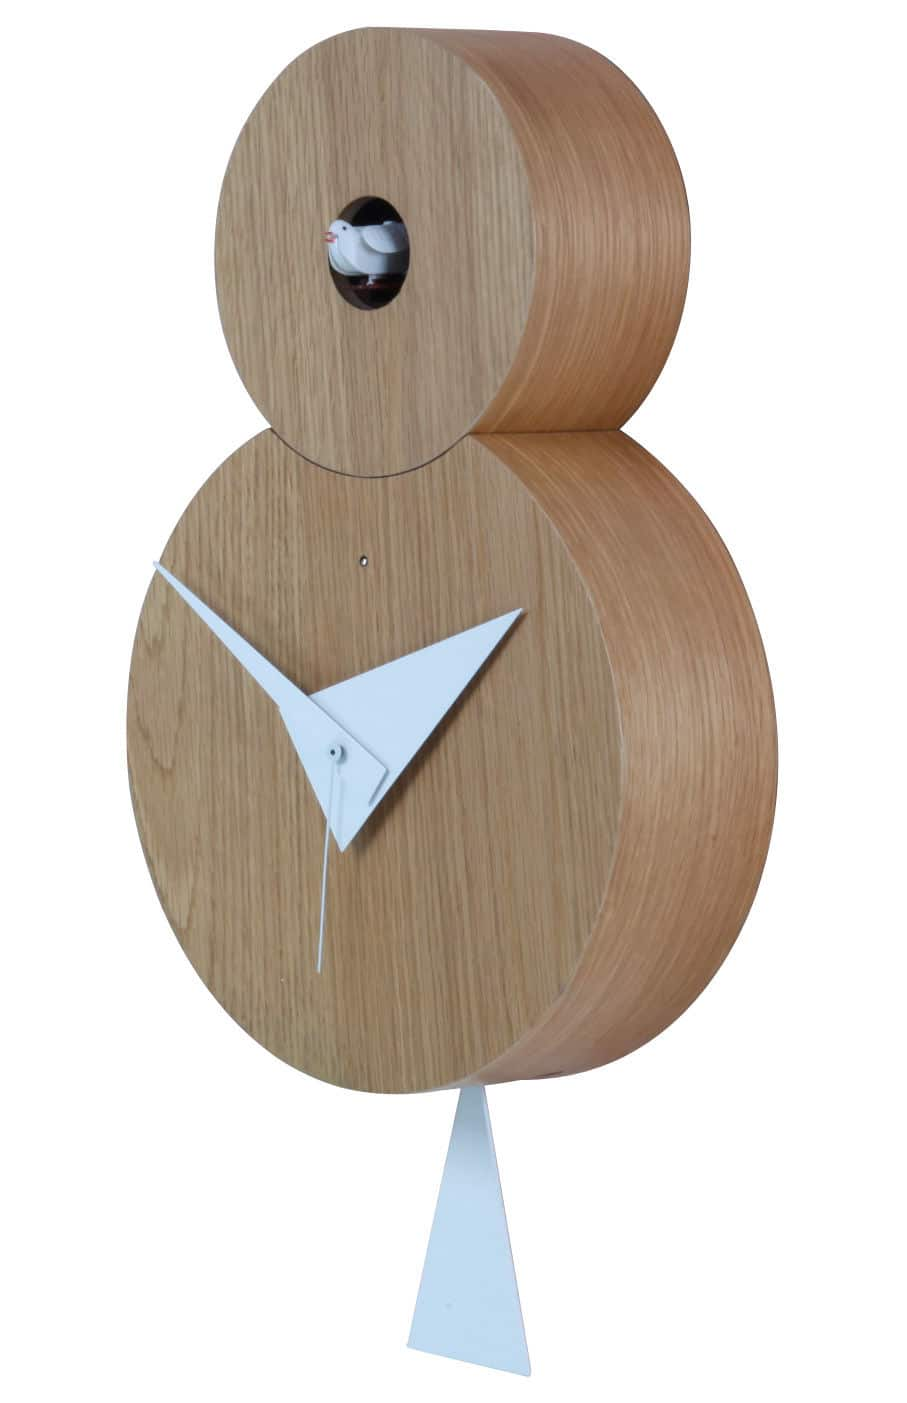 horloge coucou otto by paolo imperatori deco tendency. Black Bedroom Furniture Sets. Home Design Ideas